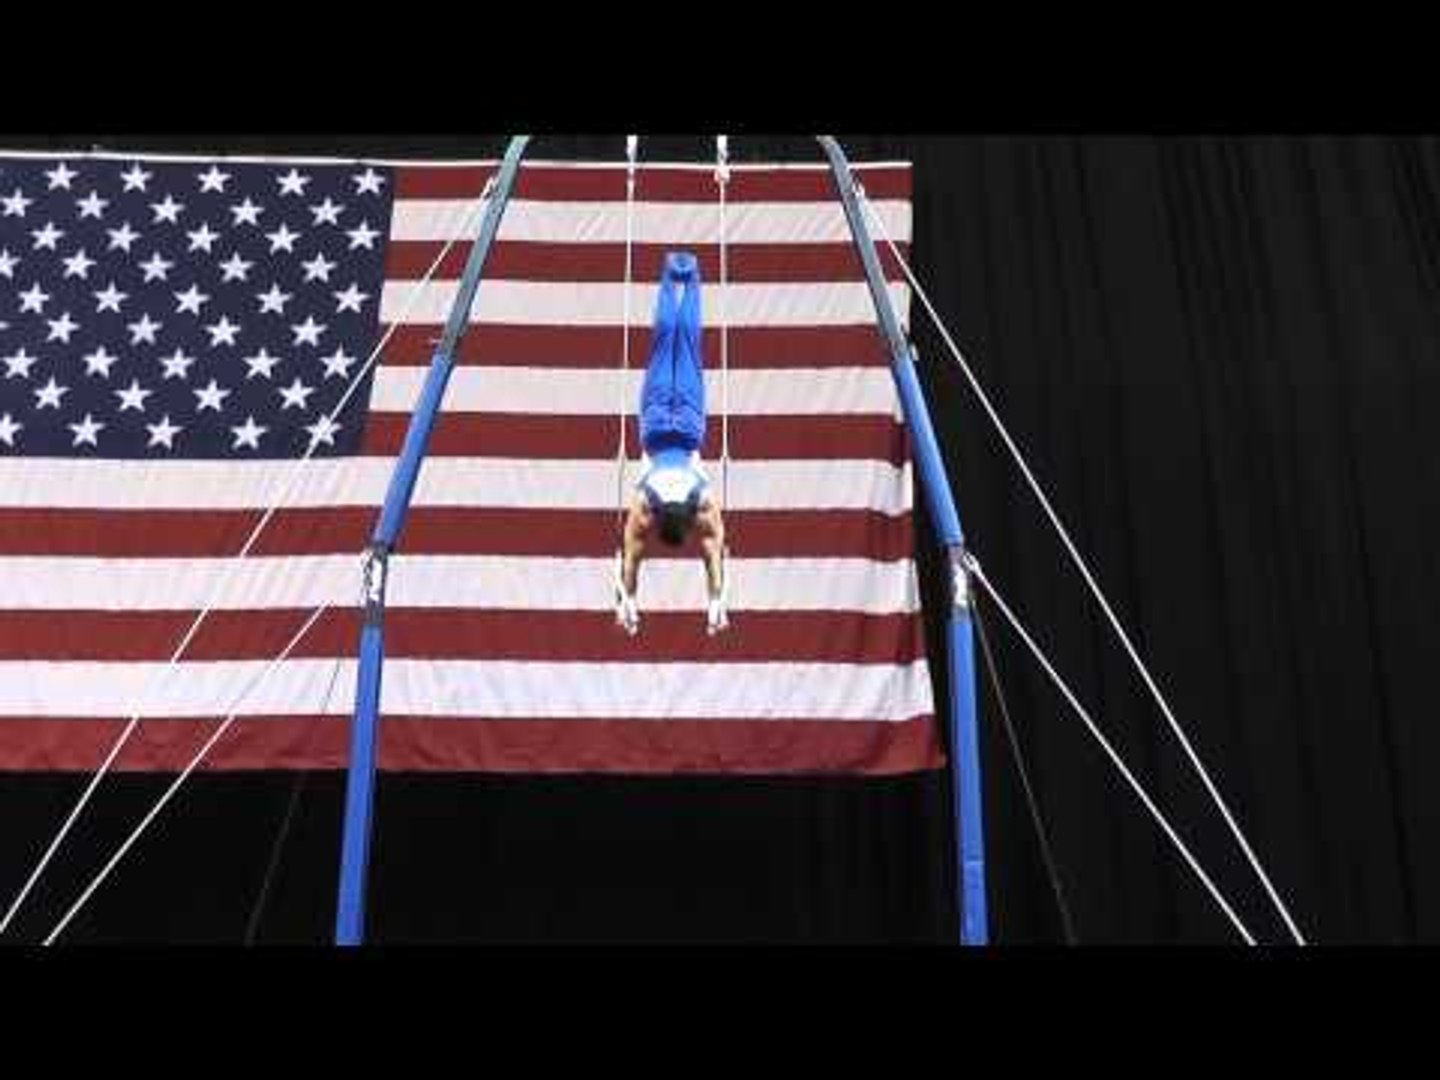 Tanner Justus - Still Rings - 2015 P&G Championships - Jr. Men Day 1